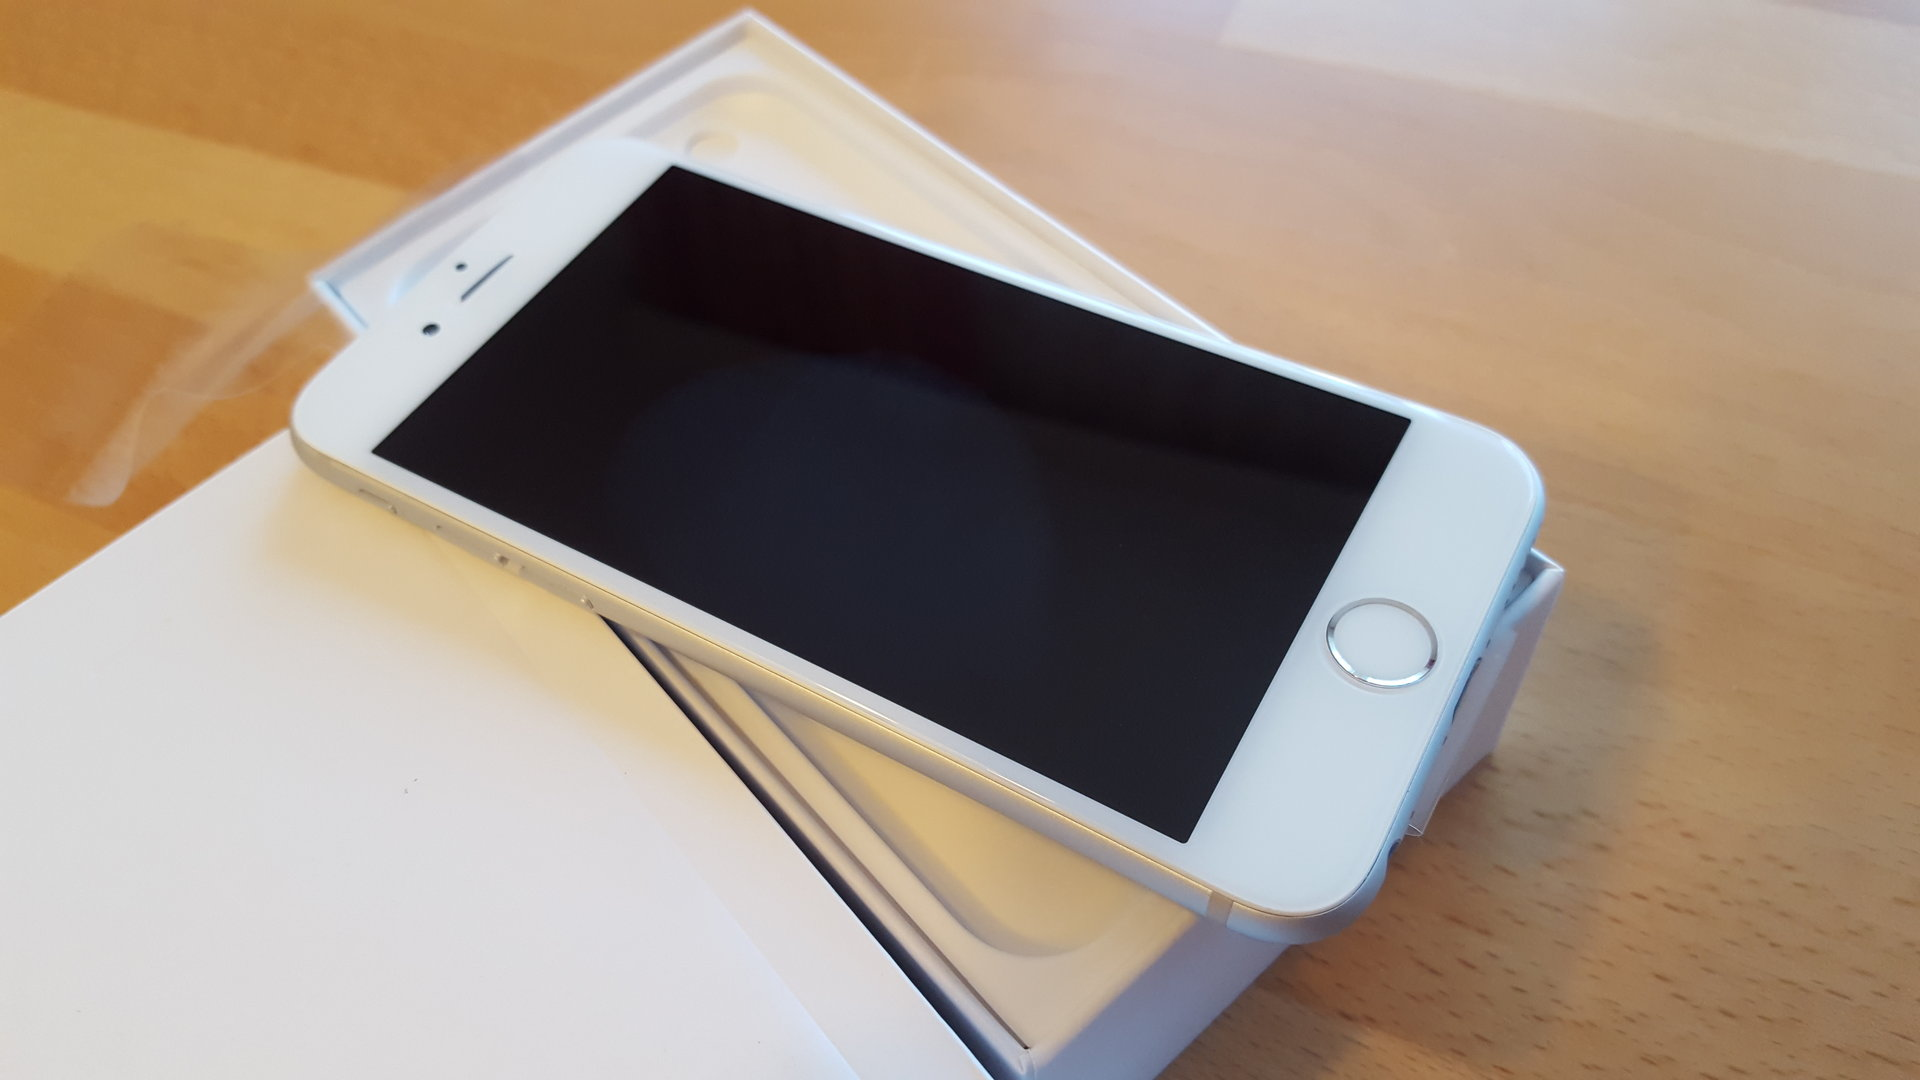 Apple iPhone 6 in spacegrau, gold oder silber